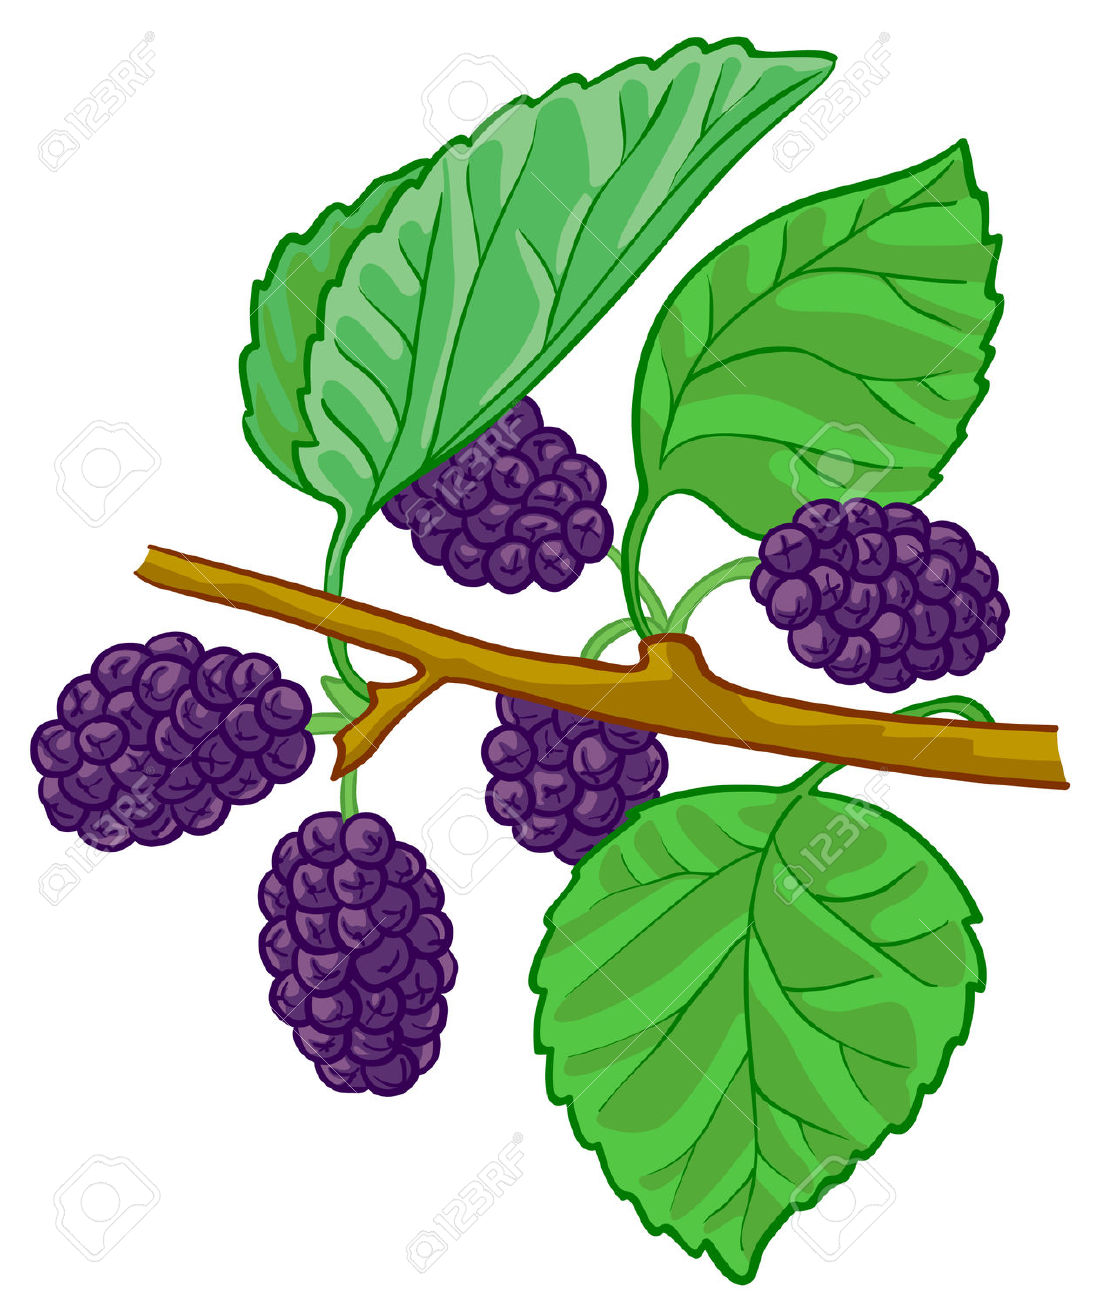 Isolated Vector Illustration Of Mulberry Branch Royalty Free.